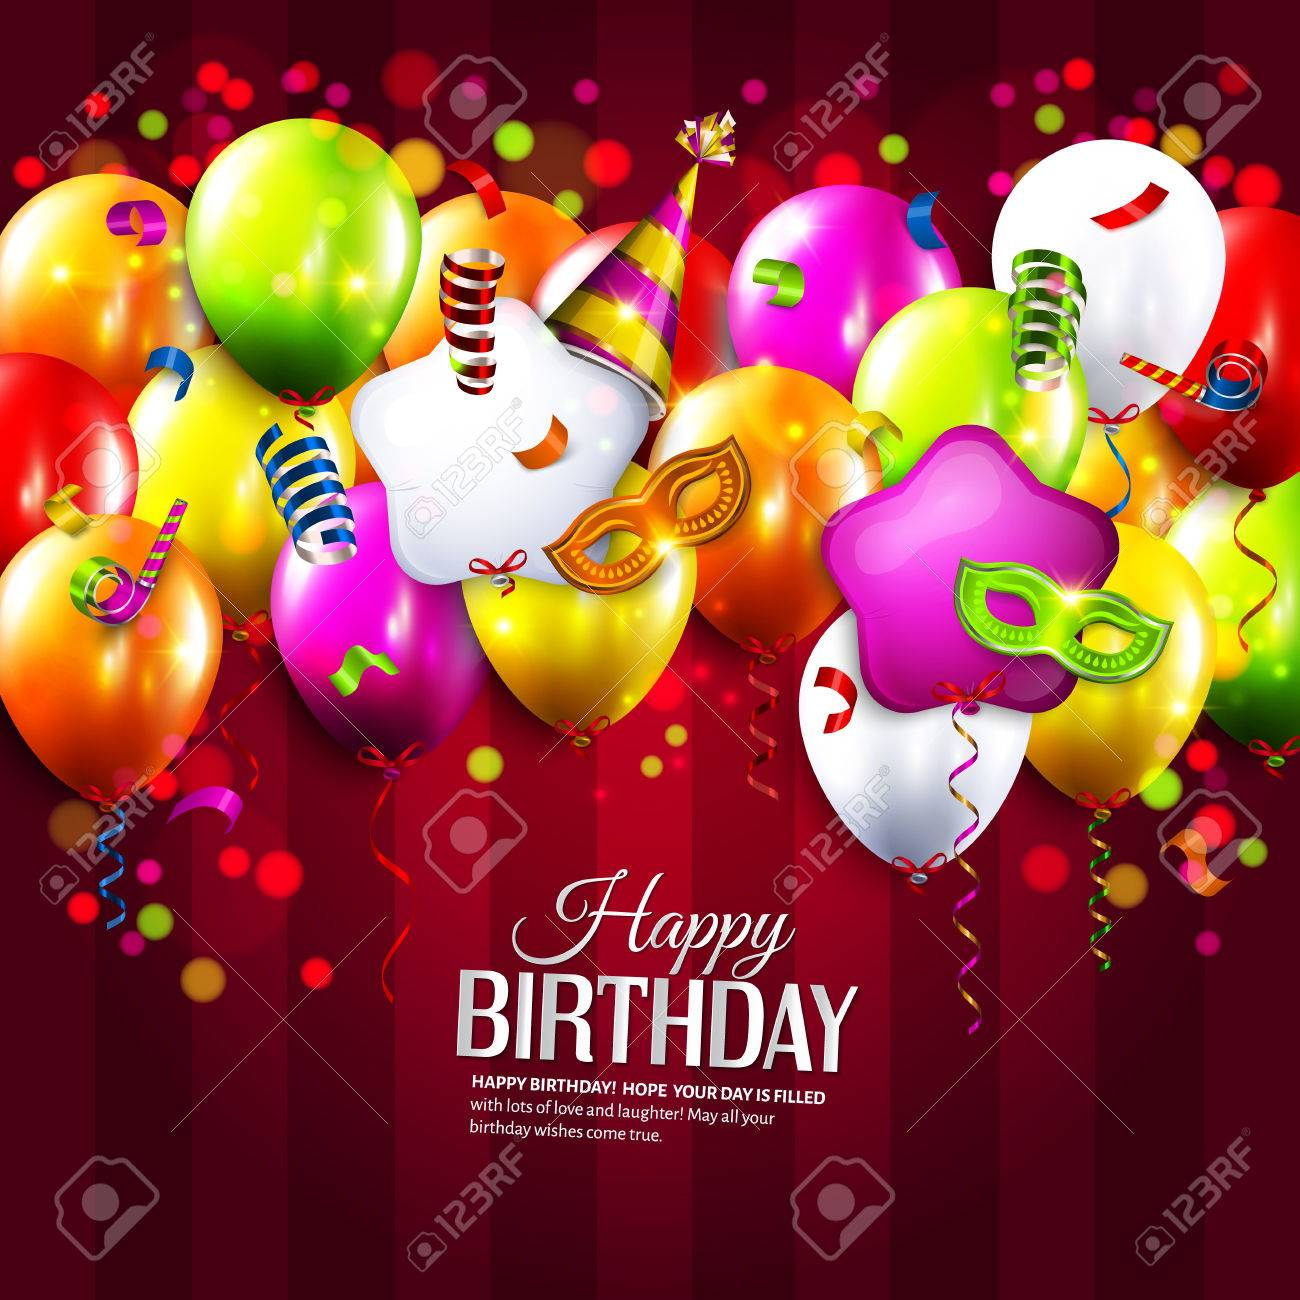 Vector birthday card with colorful balloons, curling ribbons, carnival mask, hat and confetti on stripes background. - 41658840